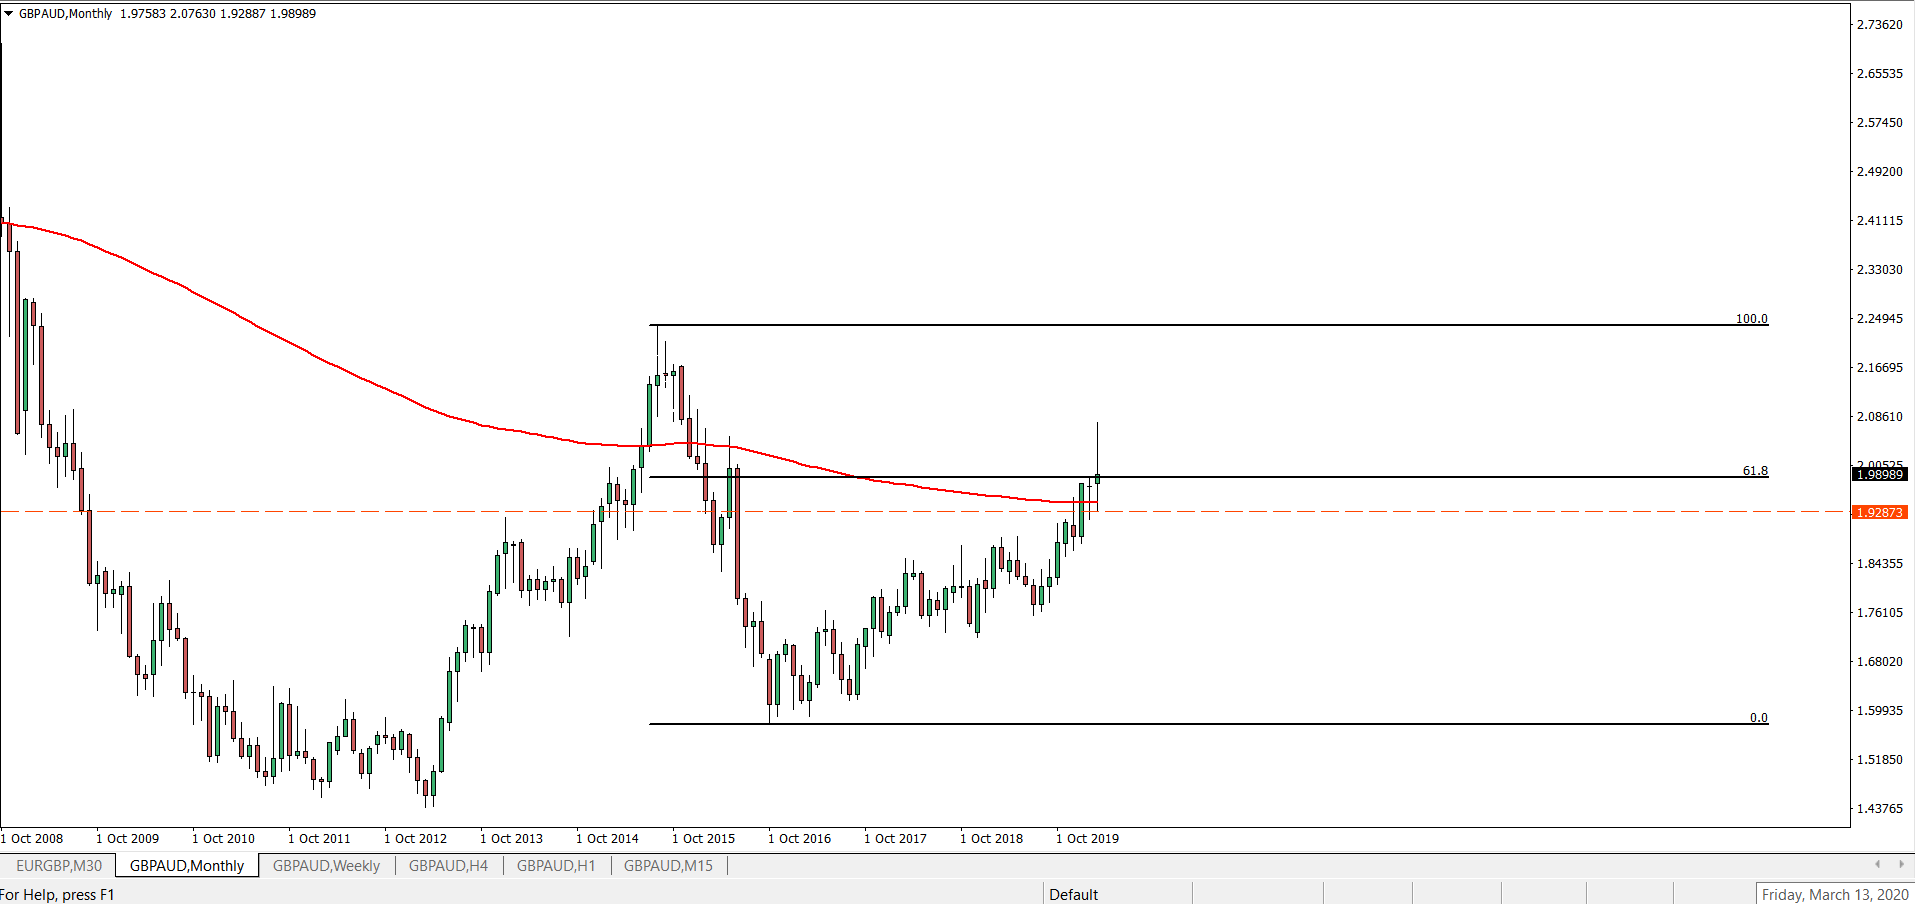 gbpaud_monthly_chart